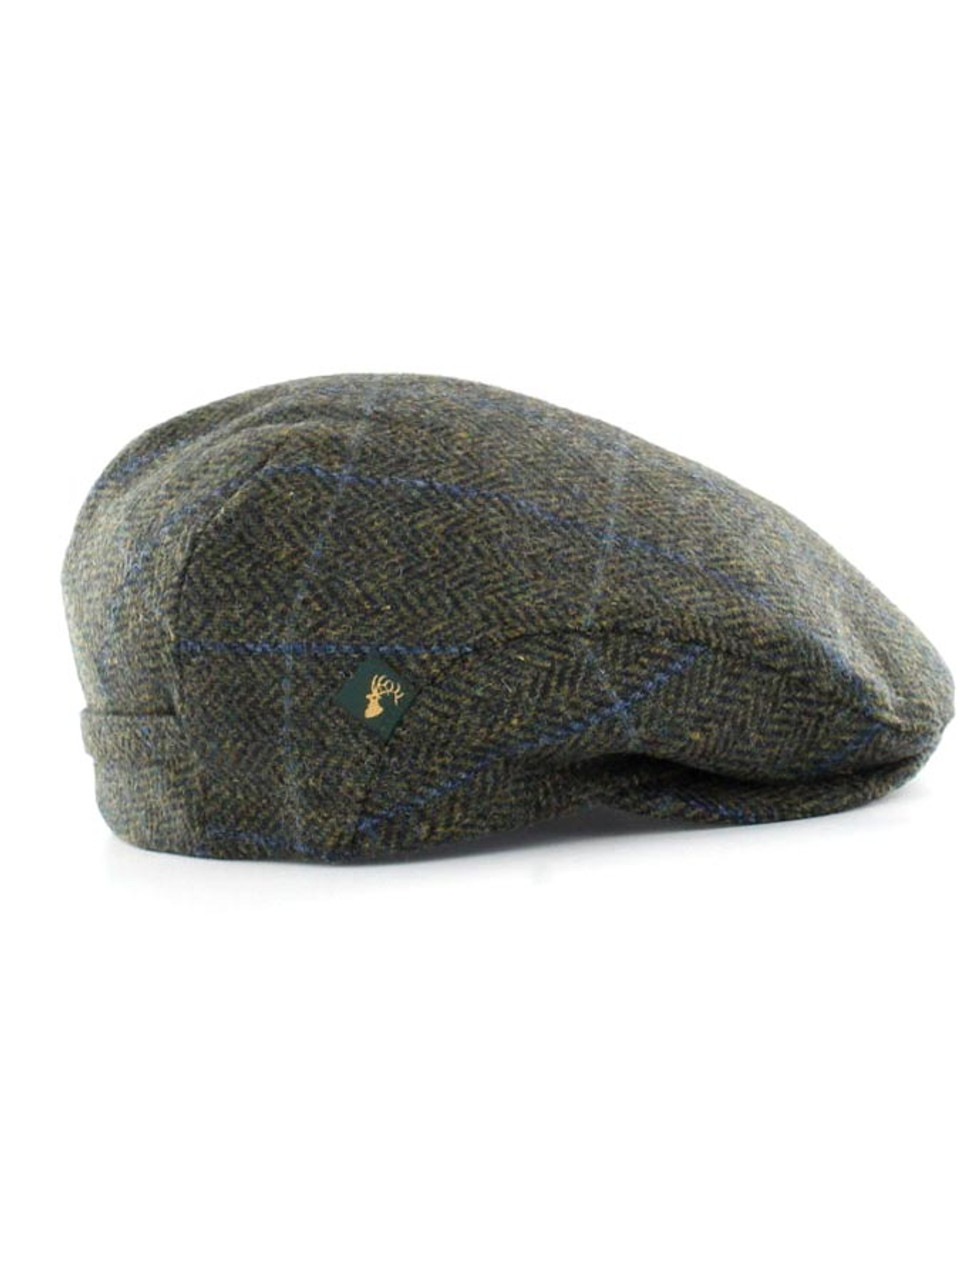 b88d3ab2 Trinity Tweed Flat Cap - Forest Green with Blue | Mucros Weavers